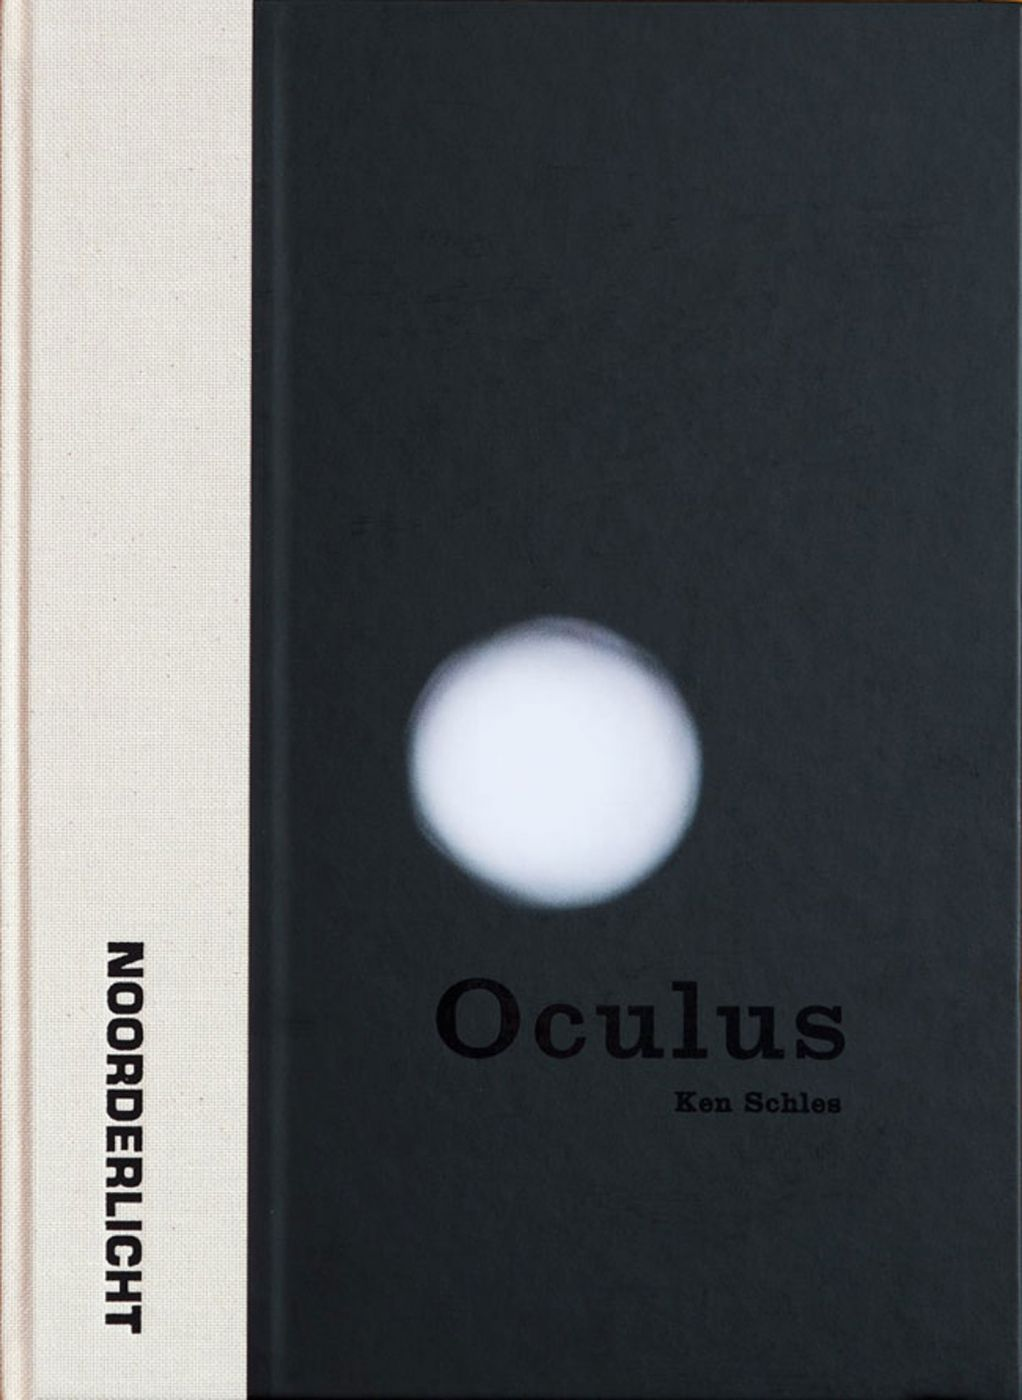 Ken Schles: Oculus, Deluxe Limited Edition (with Archival Pigment Print)